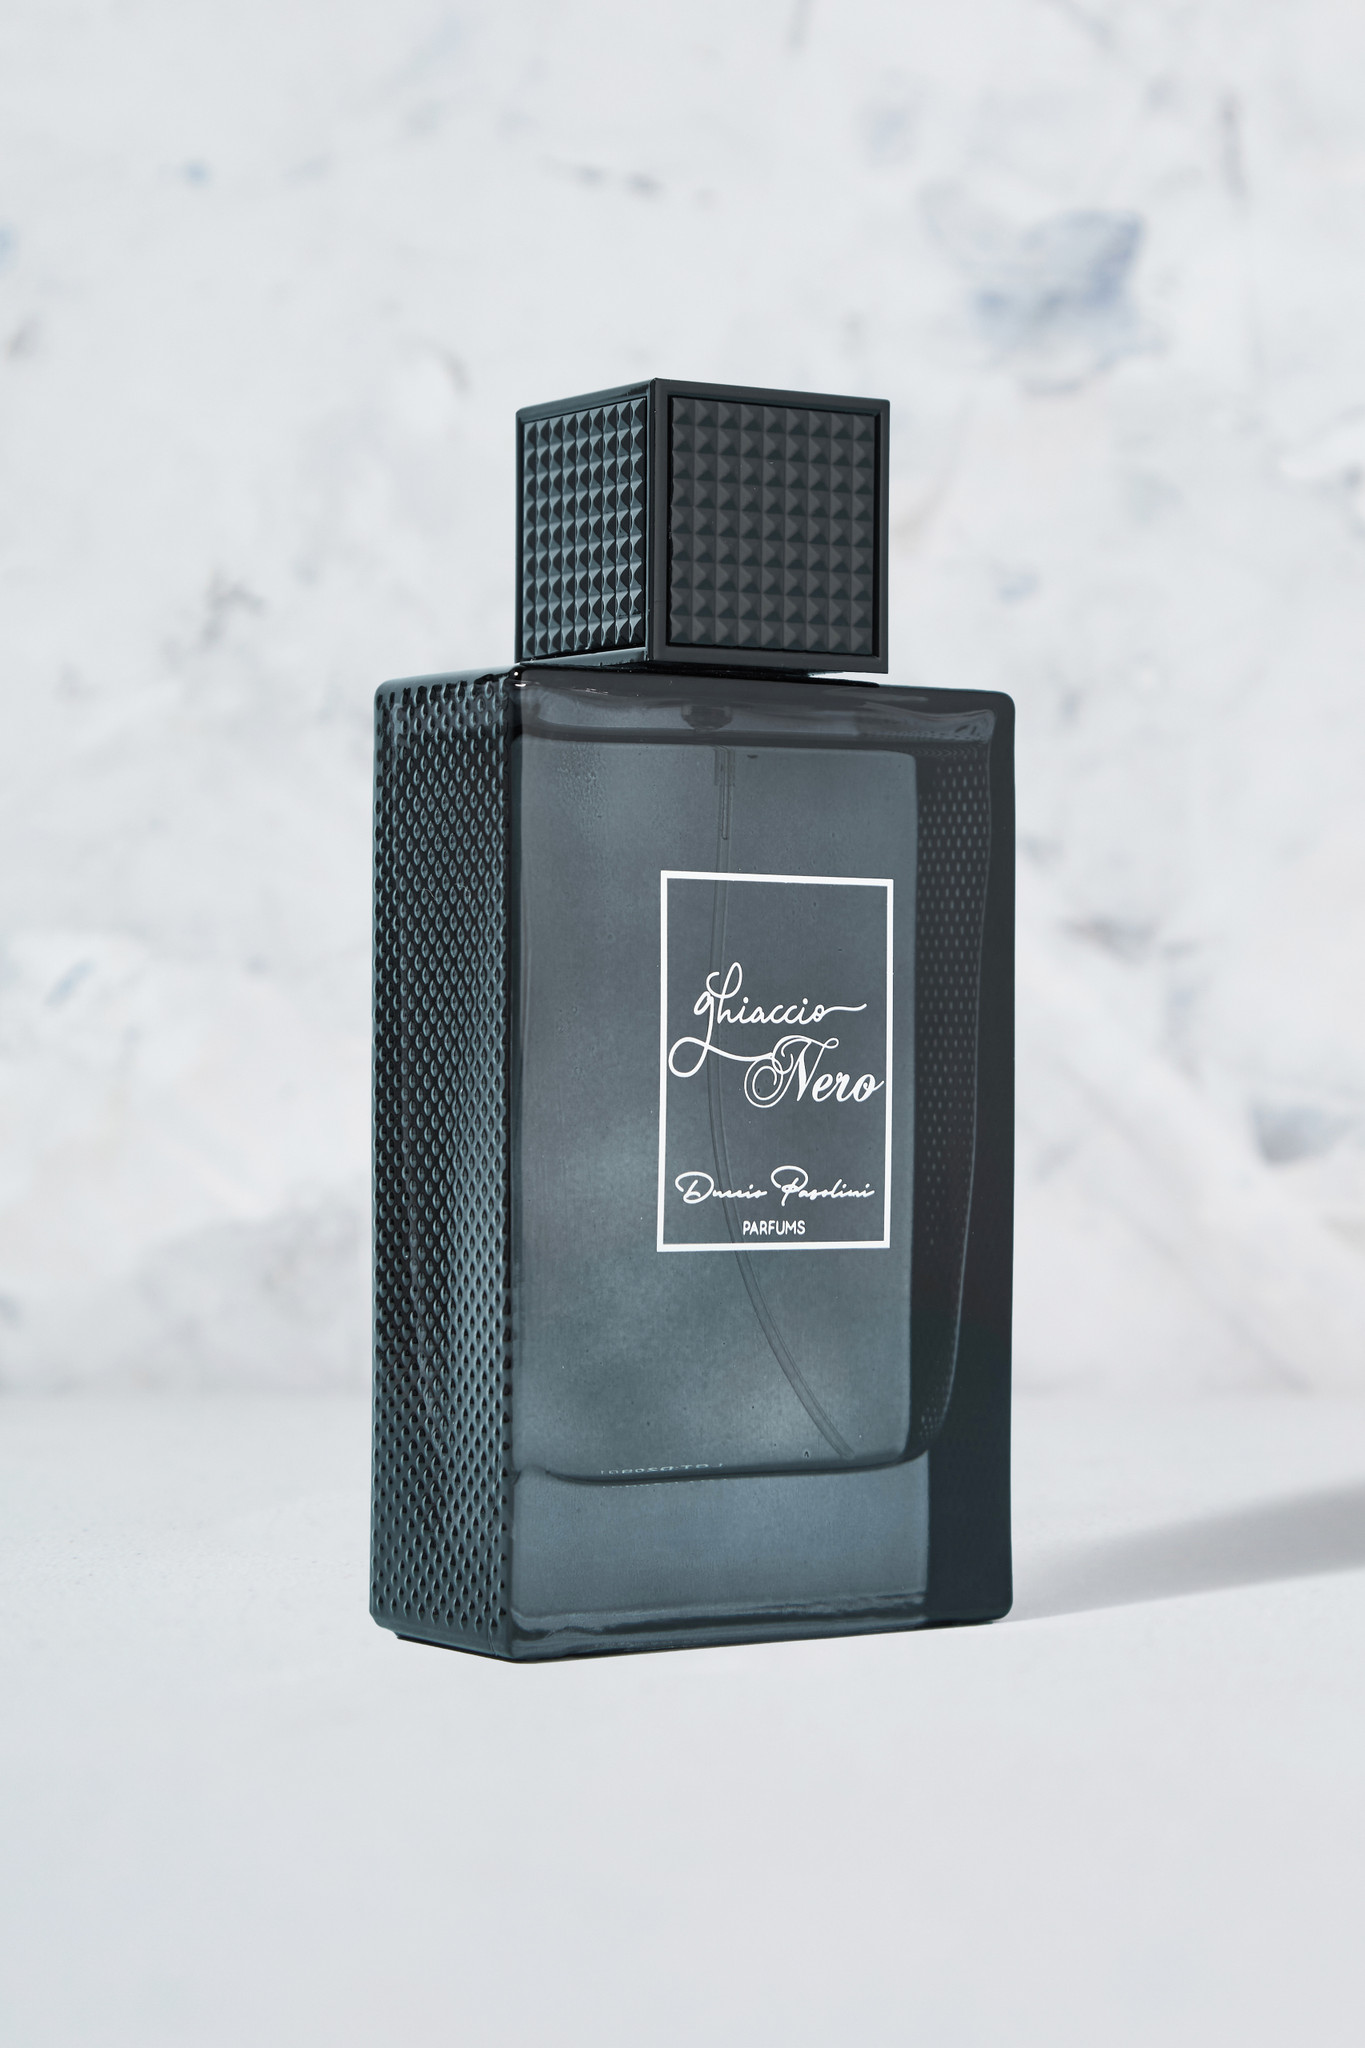 Ghiaccio Nero Perfume (Black Ice) is an intense and elegant aromatic Parfum Extract born from the blend of aromatics, fresh lemon, and moss. The fragrance is designed for the man who appreciates European fashion and elegance. Fresh lavender and delicious lemon are paired with the sweet pineapple and a final touch of moss, creating an intense and daring aromatic and citrus fragrance. Top Notes: Lavender and Lemon. Middle Notes: Pineapple. Base Notes: Moss. Key Notes: Aromatic, Citrus, Sweet, Woody & Fresh Spicy.